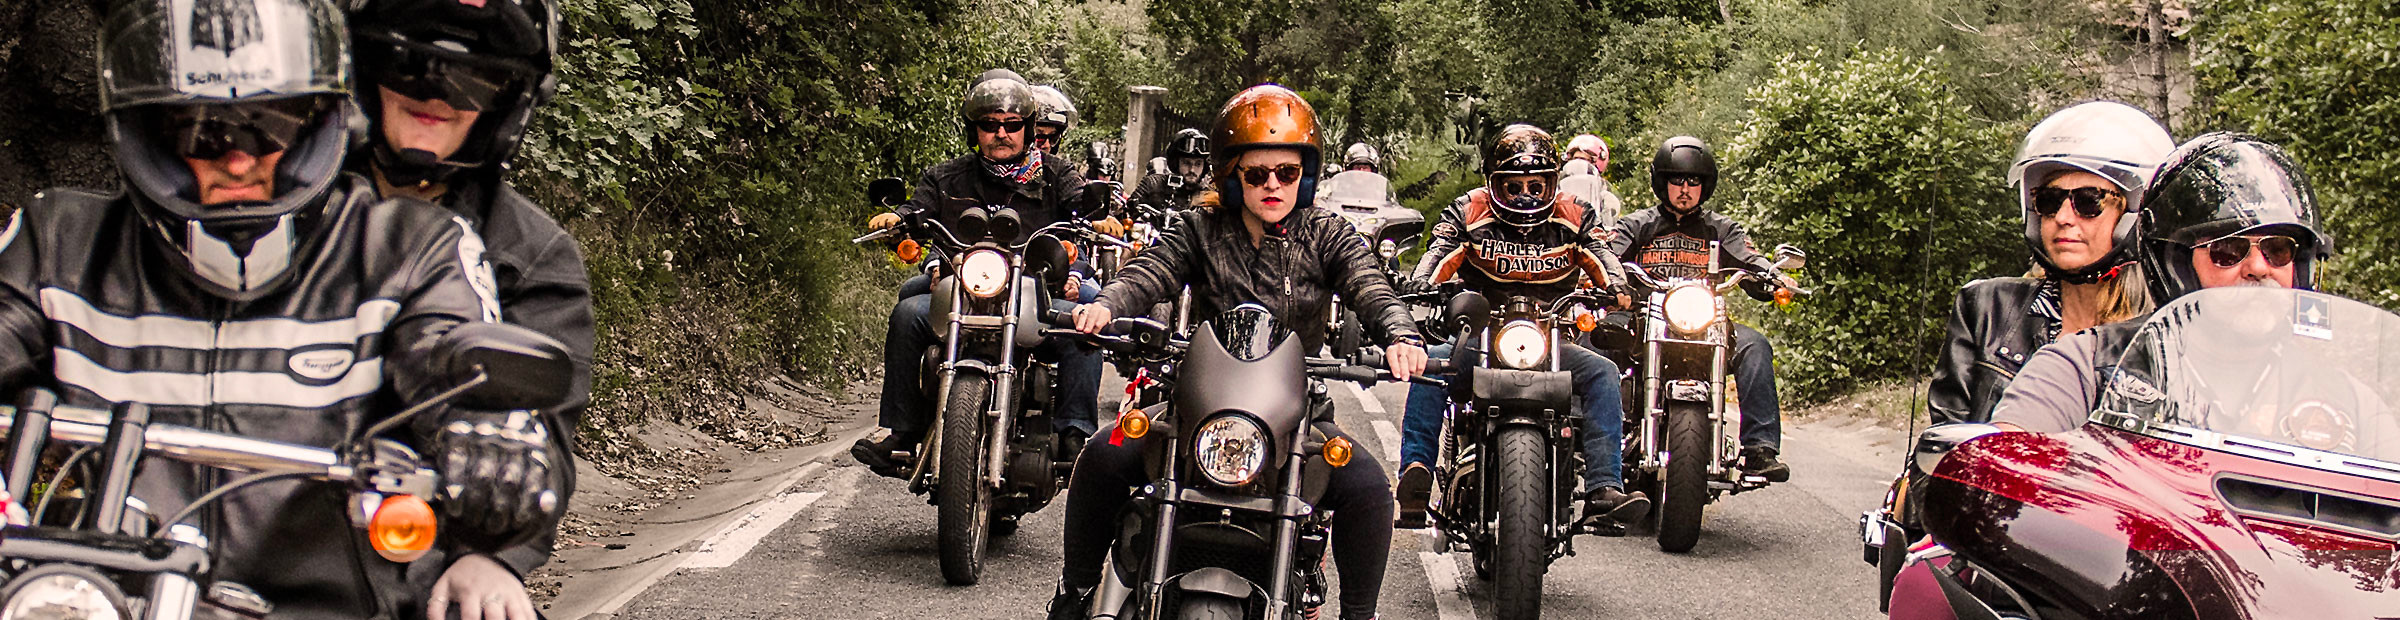 Learn to Ride at Savannah Harley-Davidson